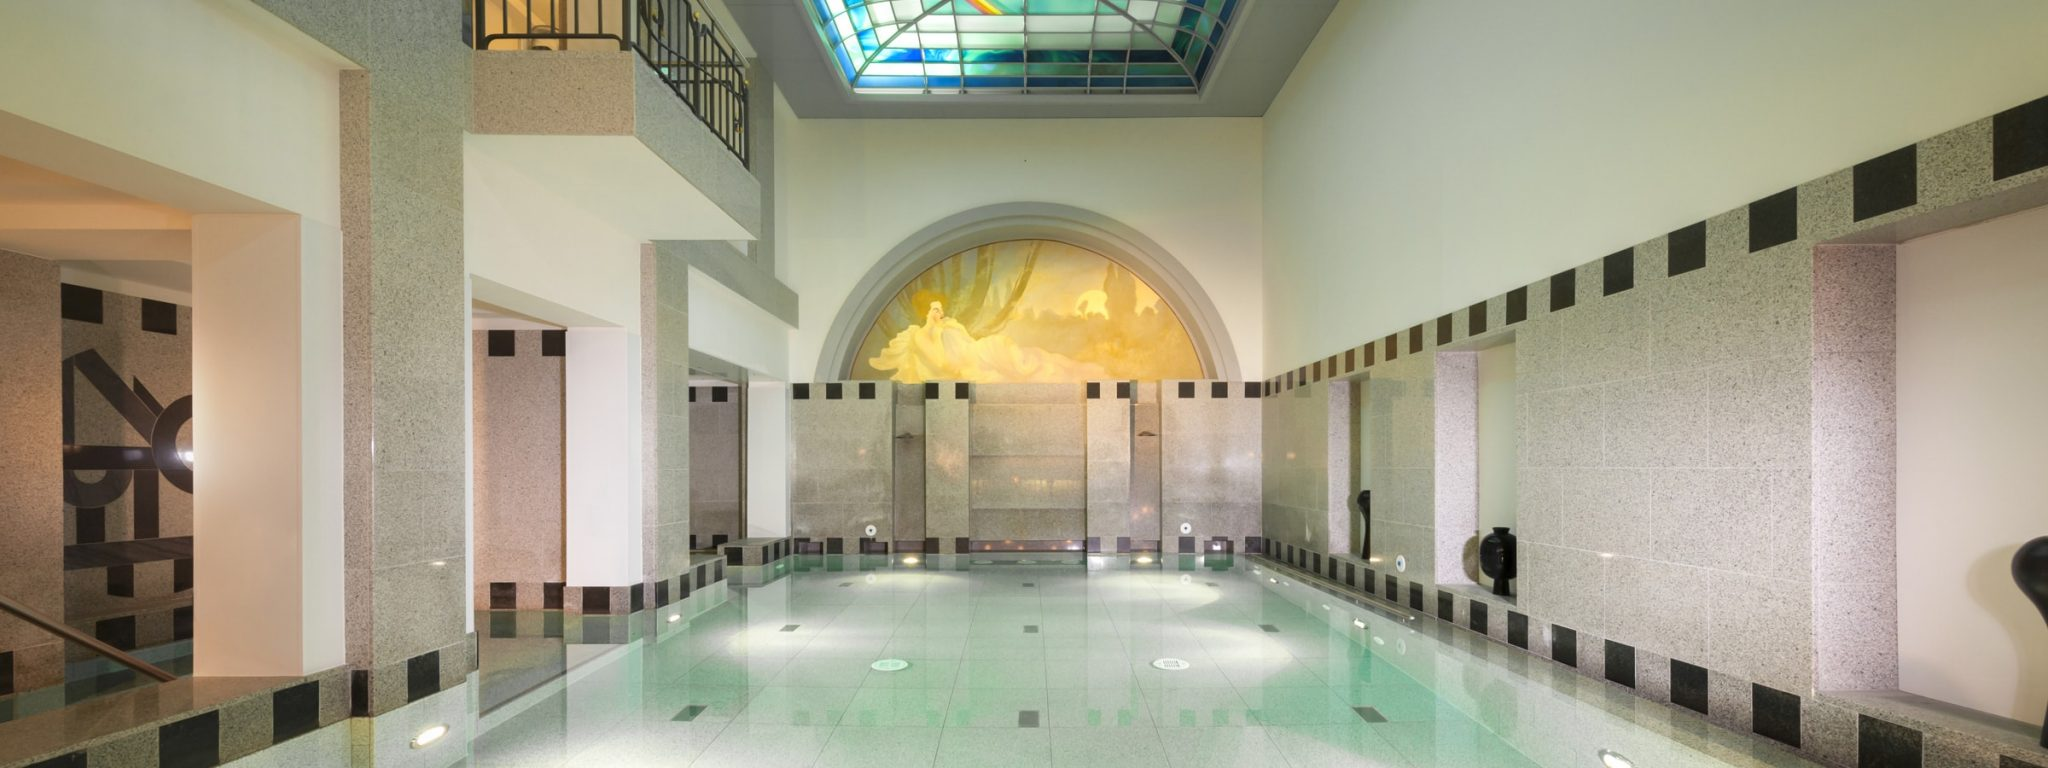 wellness in baden baden